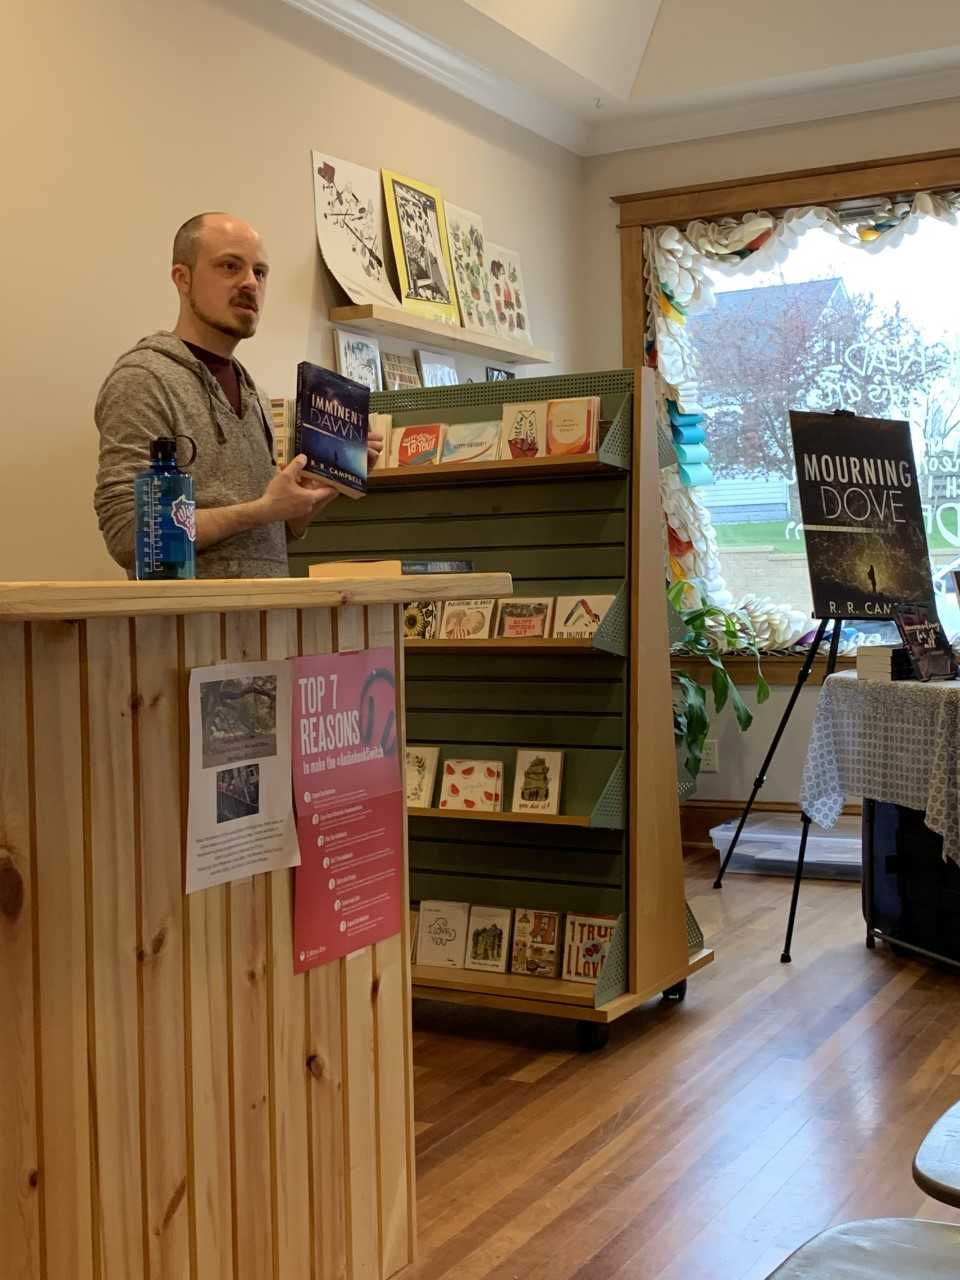 Ryan Campbell, a local author, presents his novel at his book launch event at Dotter's Bookstore